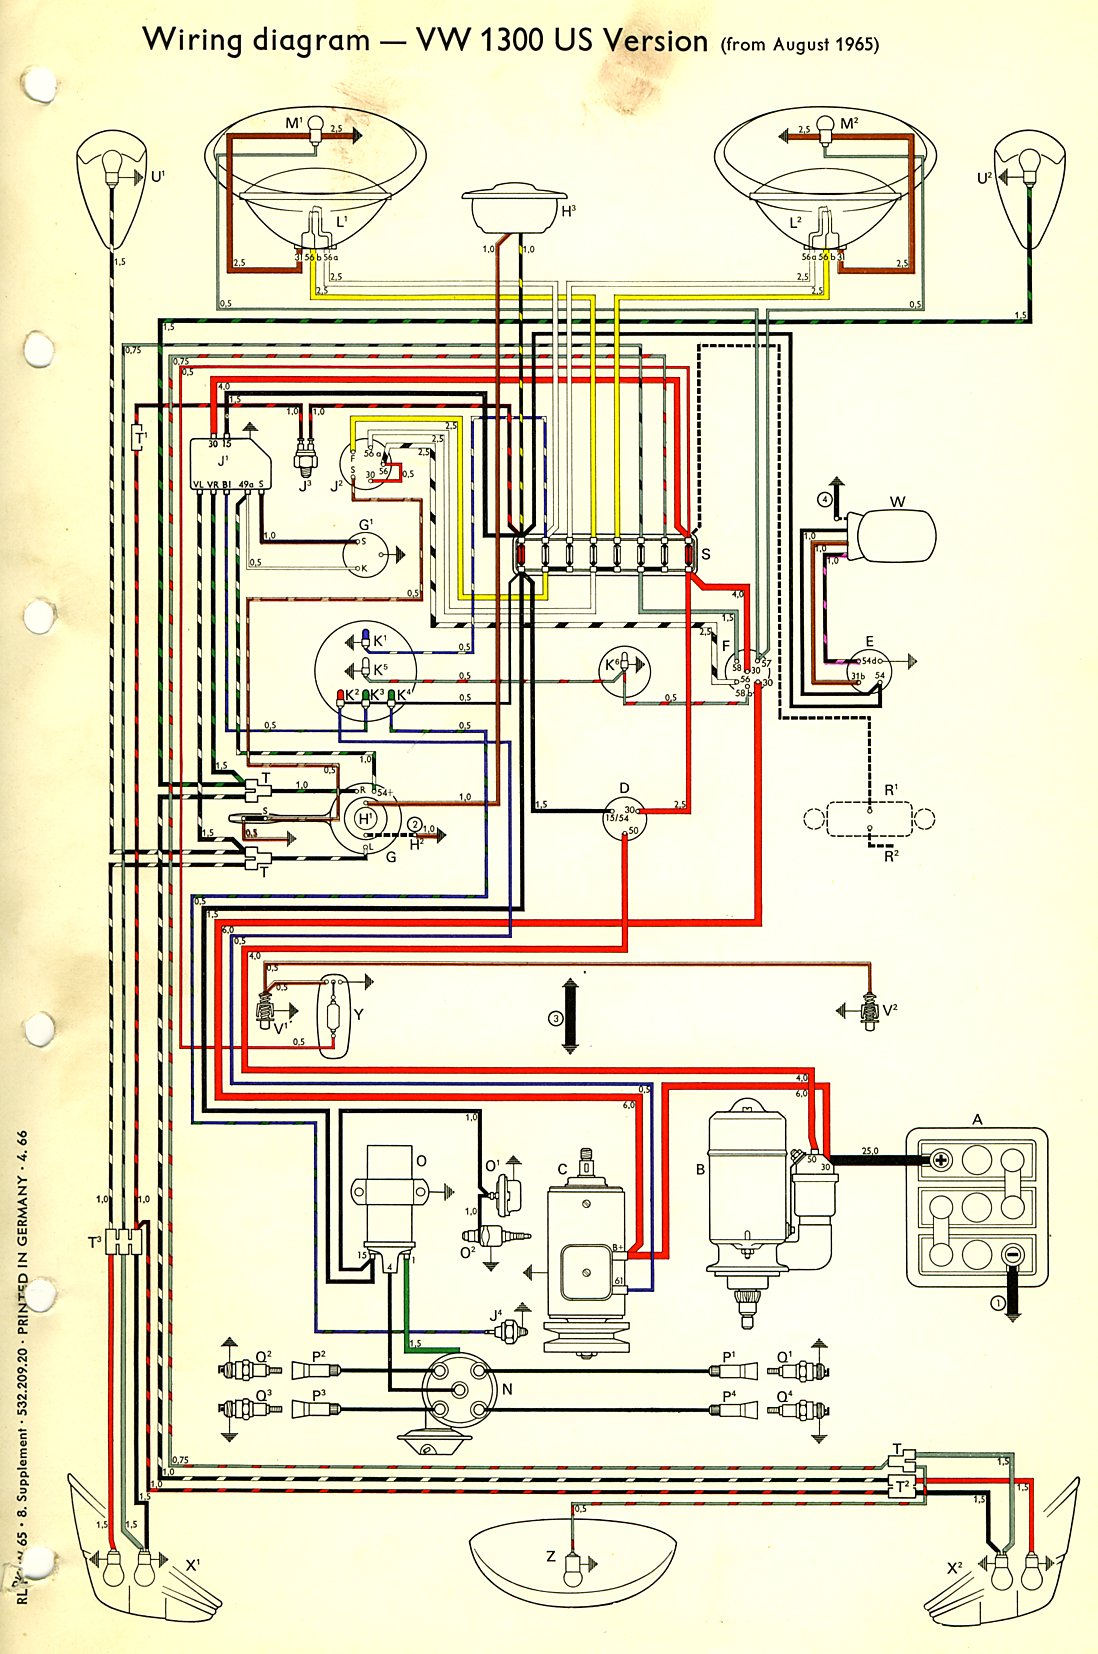 thesamba com type 1 wiring diagrams vw bug alternator wiring diagram 1967 vw beetle wiring diagram #8